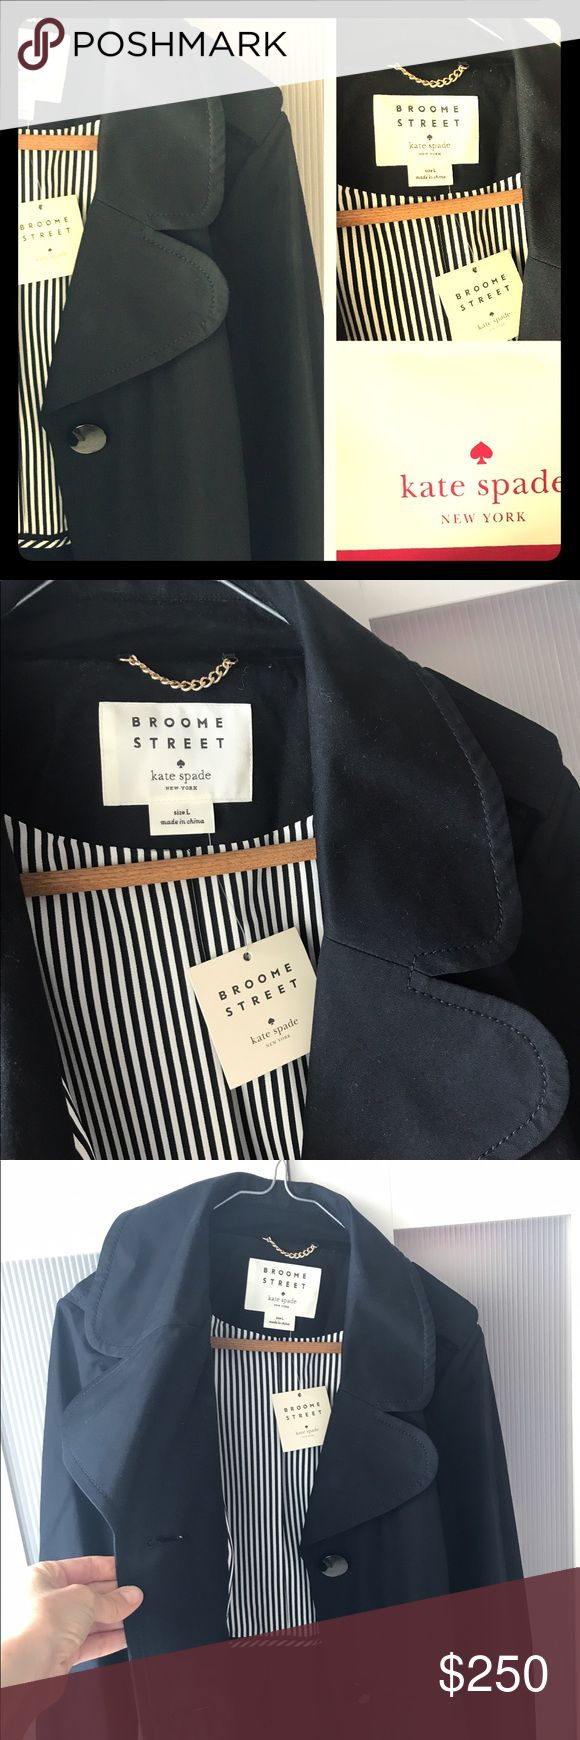 Kate Spade❤️Trench Coat Black Rain coat Authentic Kate Spade Classic Trench Coat. Brand new! Tags attached. Store bag included! Size Large kate spade Jackets & Coats Trench Coats